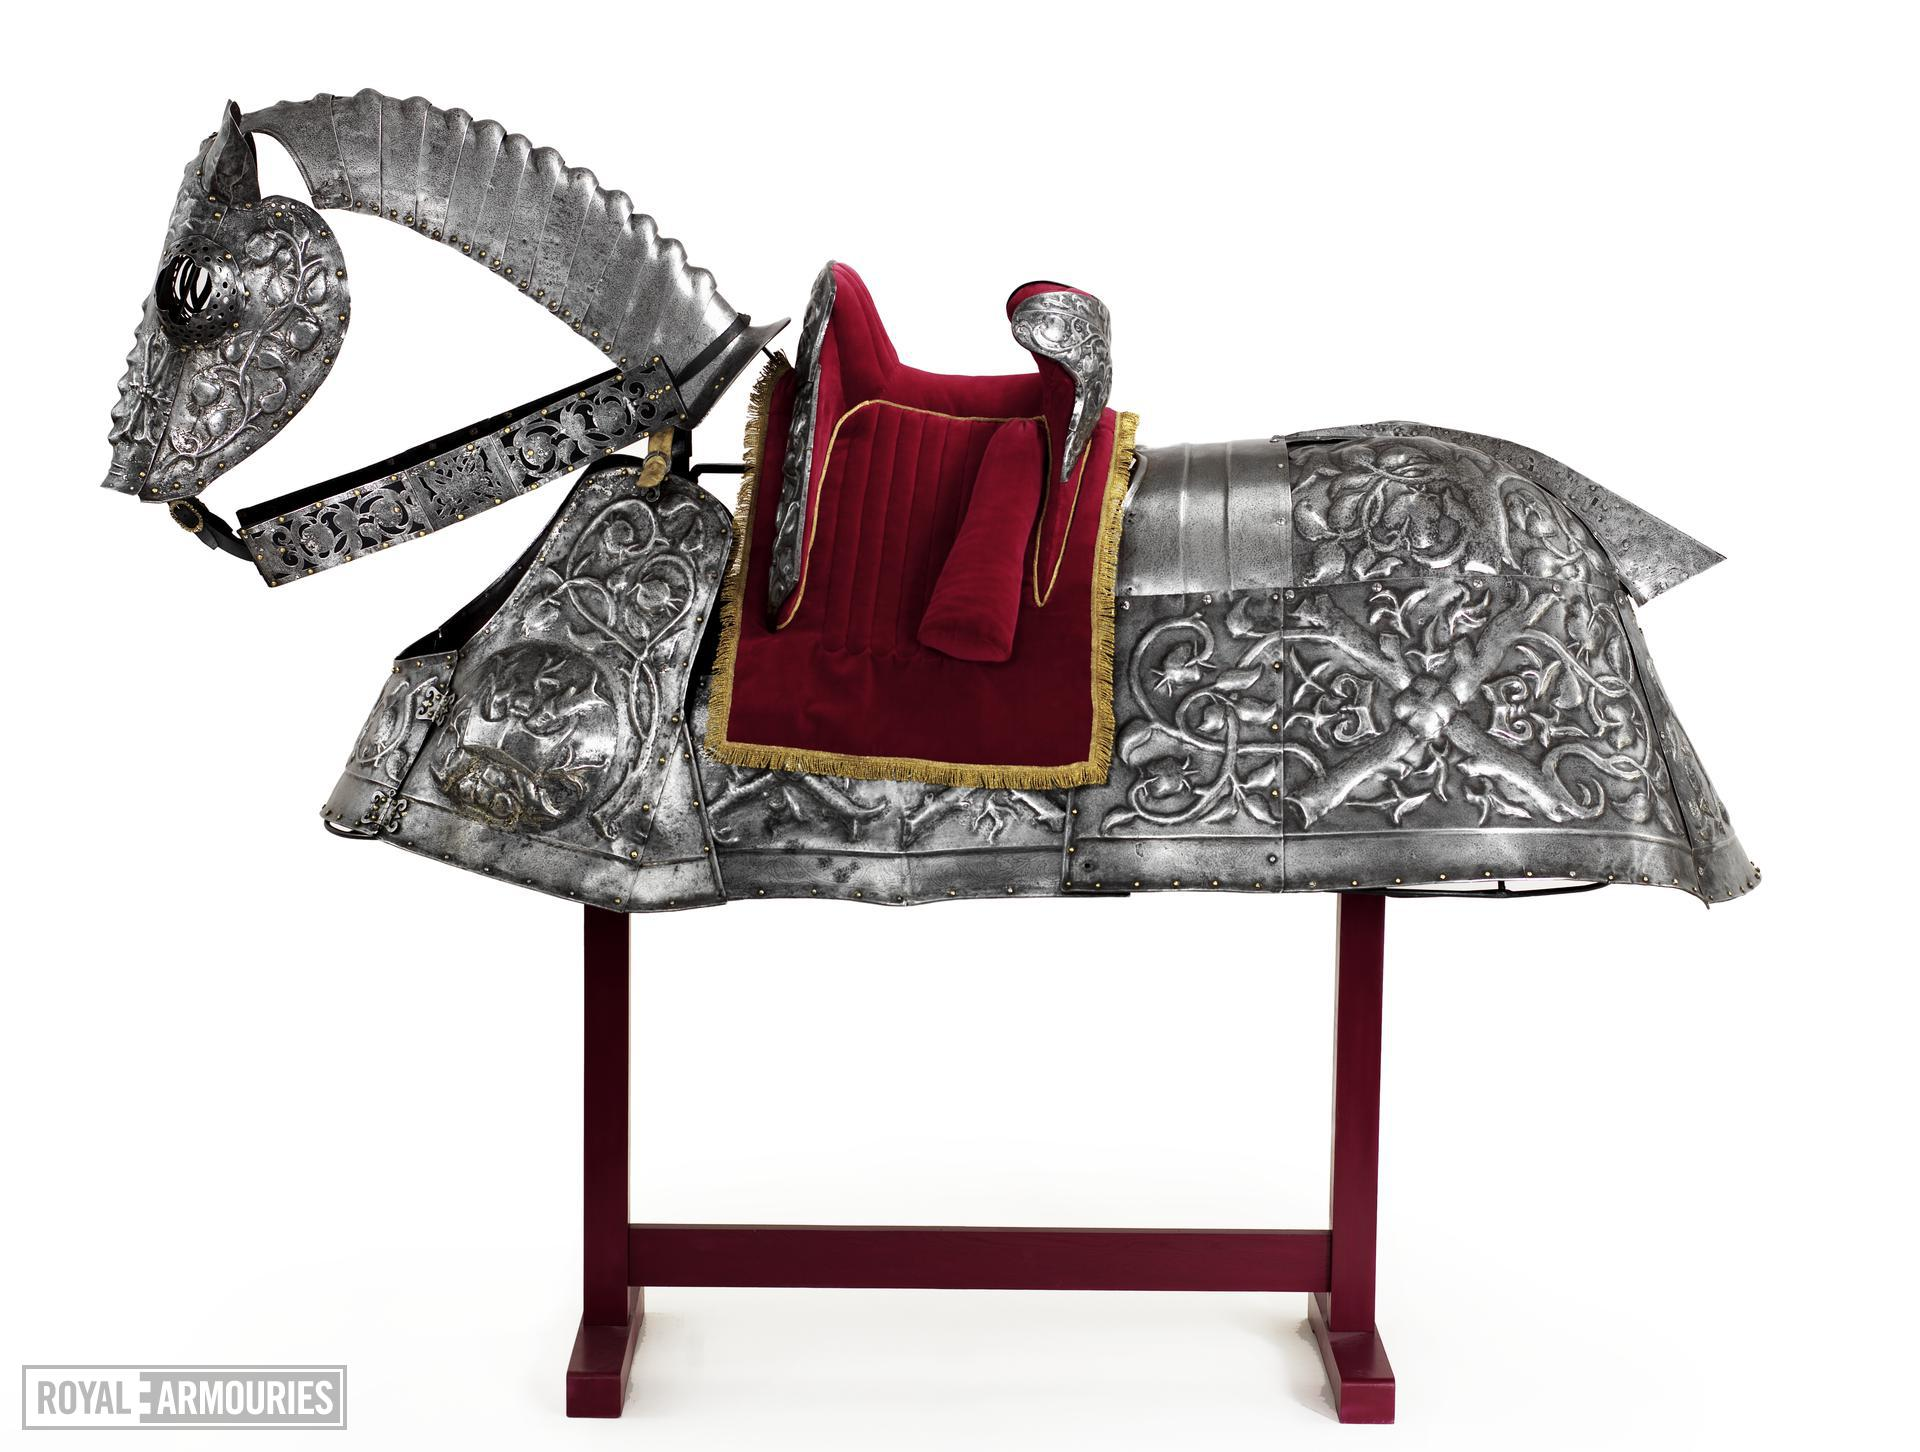 Horse Armour - Burgundian bard Of King Henry VIII, by Guillem Margot, decorated by Paul van Vreland, presented by Maximilian I, known as the Burgundian bard